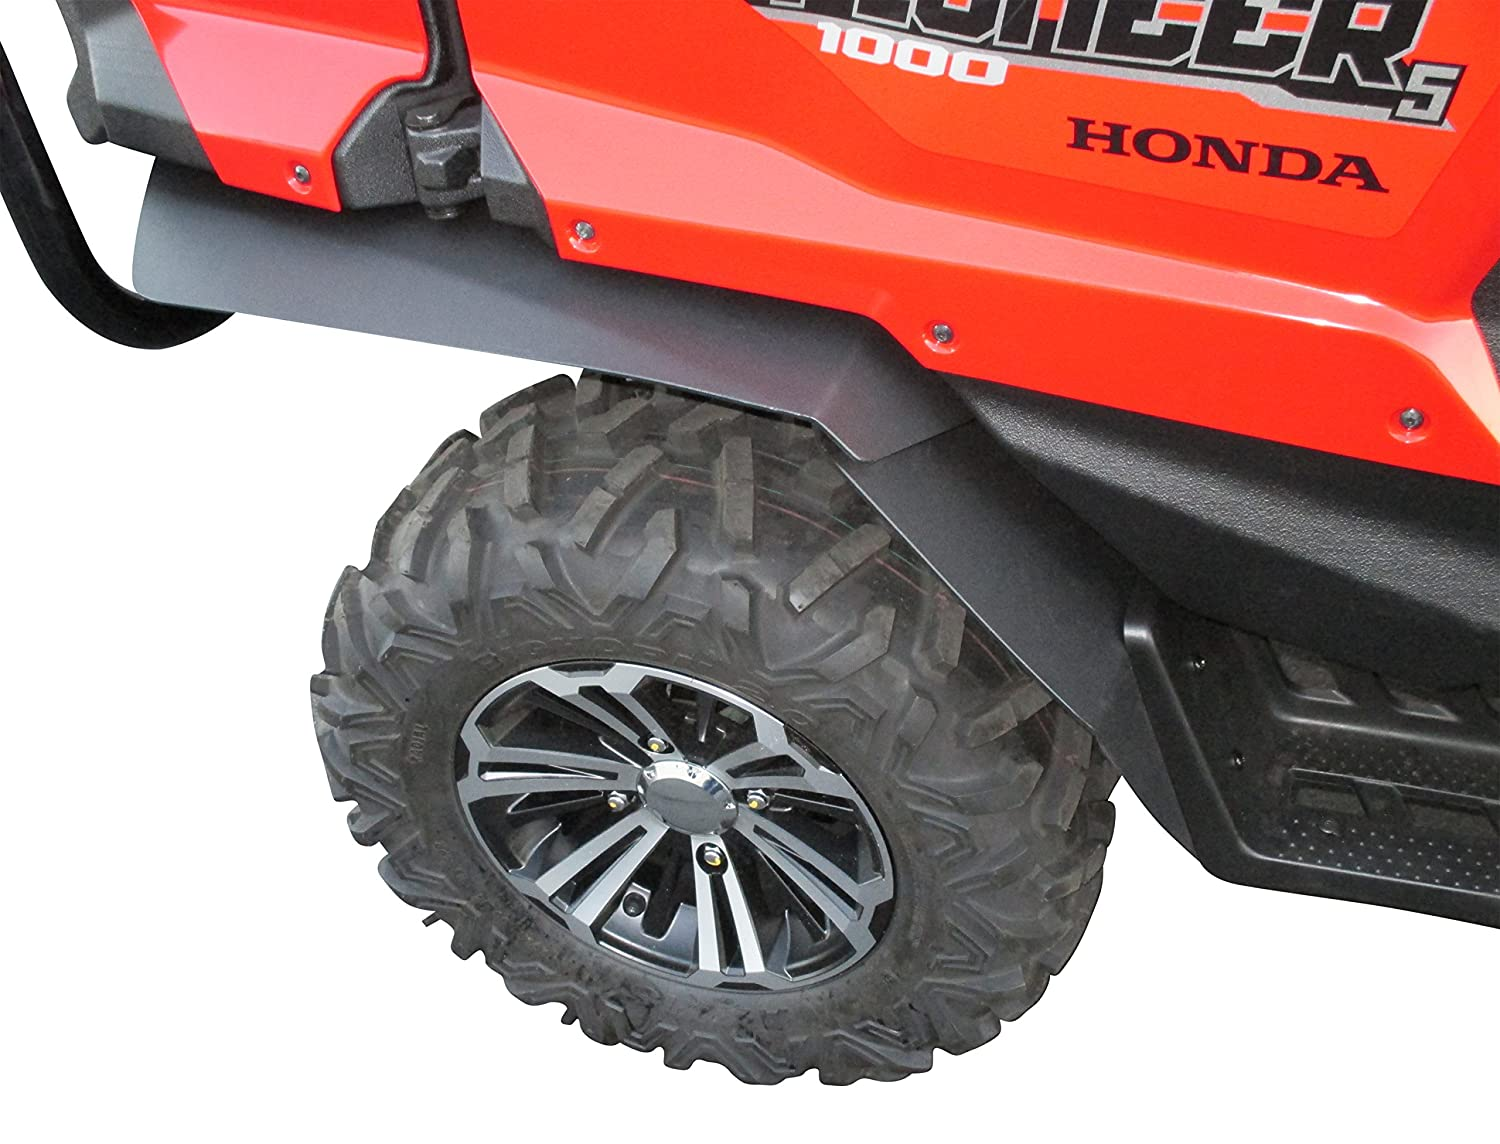 Front /& XL Rear Fenders Full Set MudBusters Fender Flares Fender Extensions for Honda Pioneer 1000-5